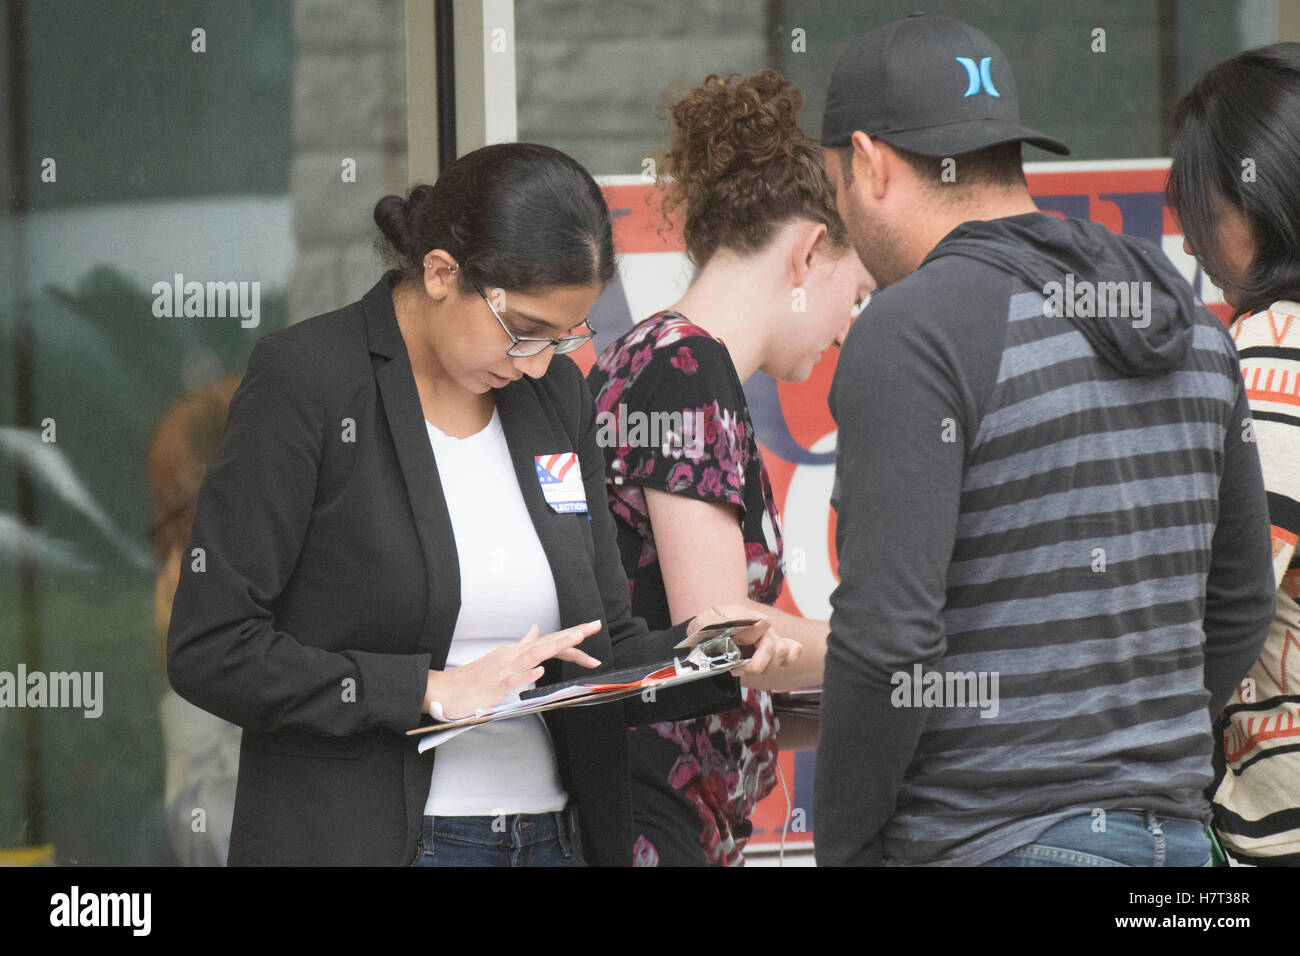 Election workers check the identification of voters at a south Austin polling site during Nov. 8 presidential election. Stock Photo